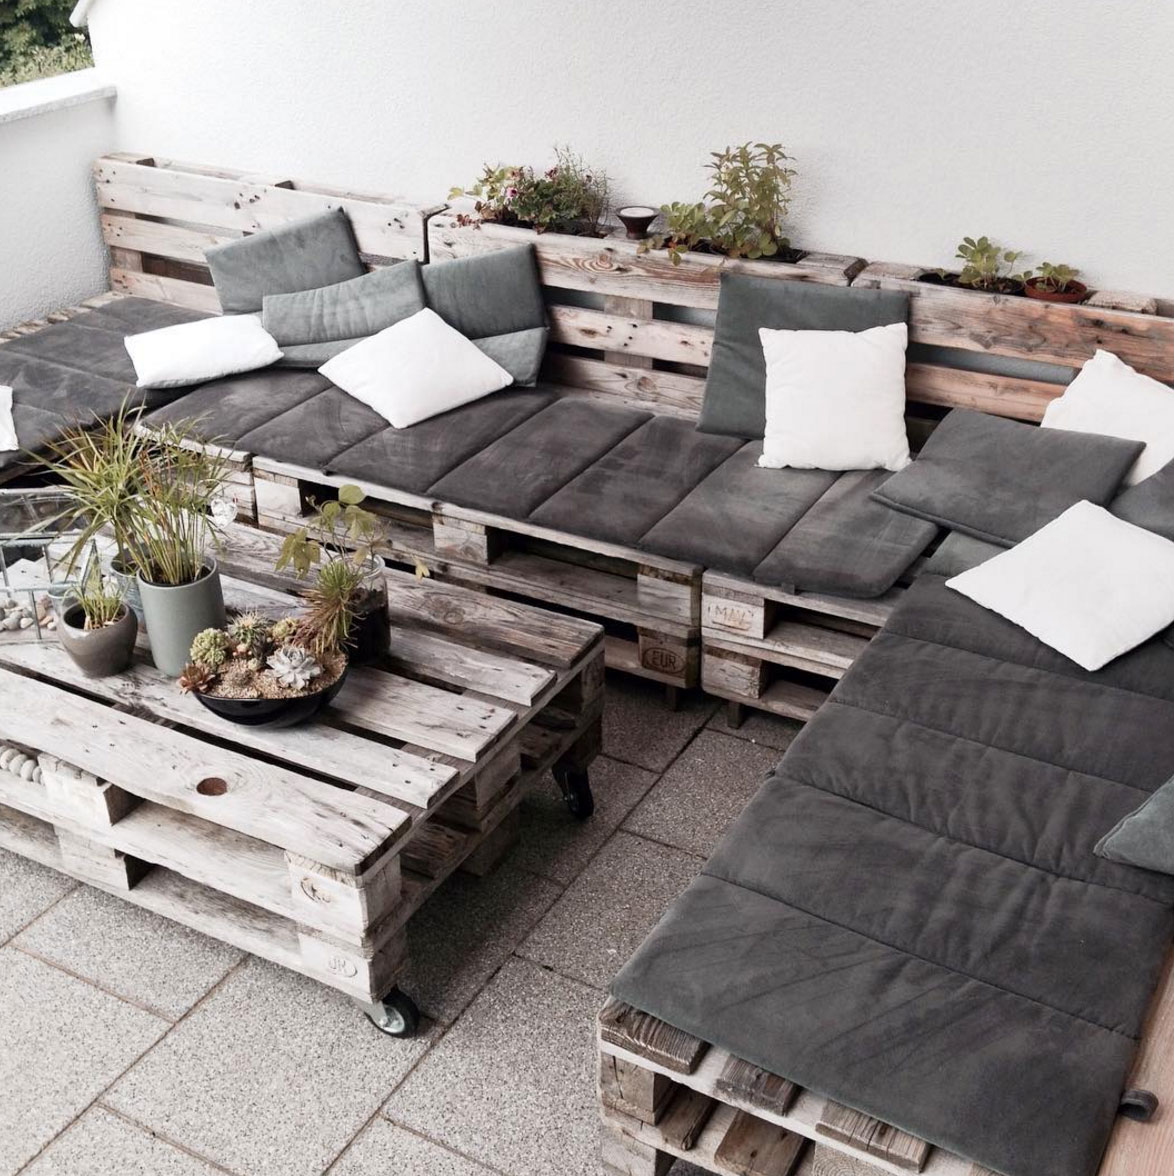 faszinierend terrasse aus europaletten fotos erindzain. Black Bedroom Furniture Sets. Home Design Ideas